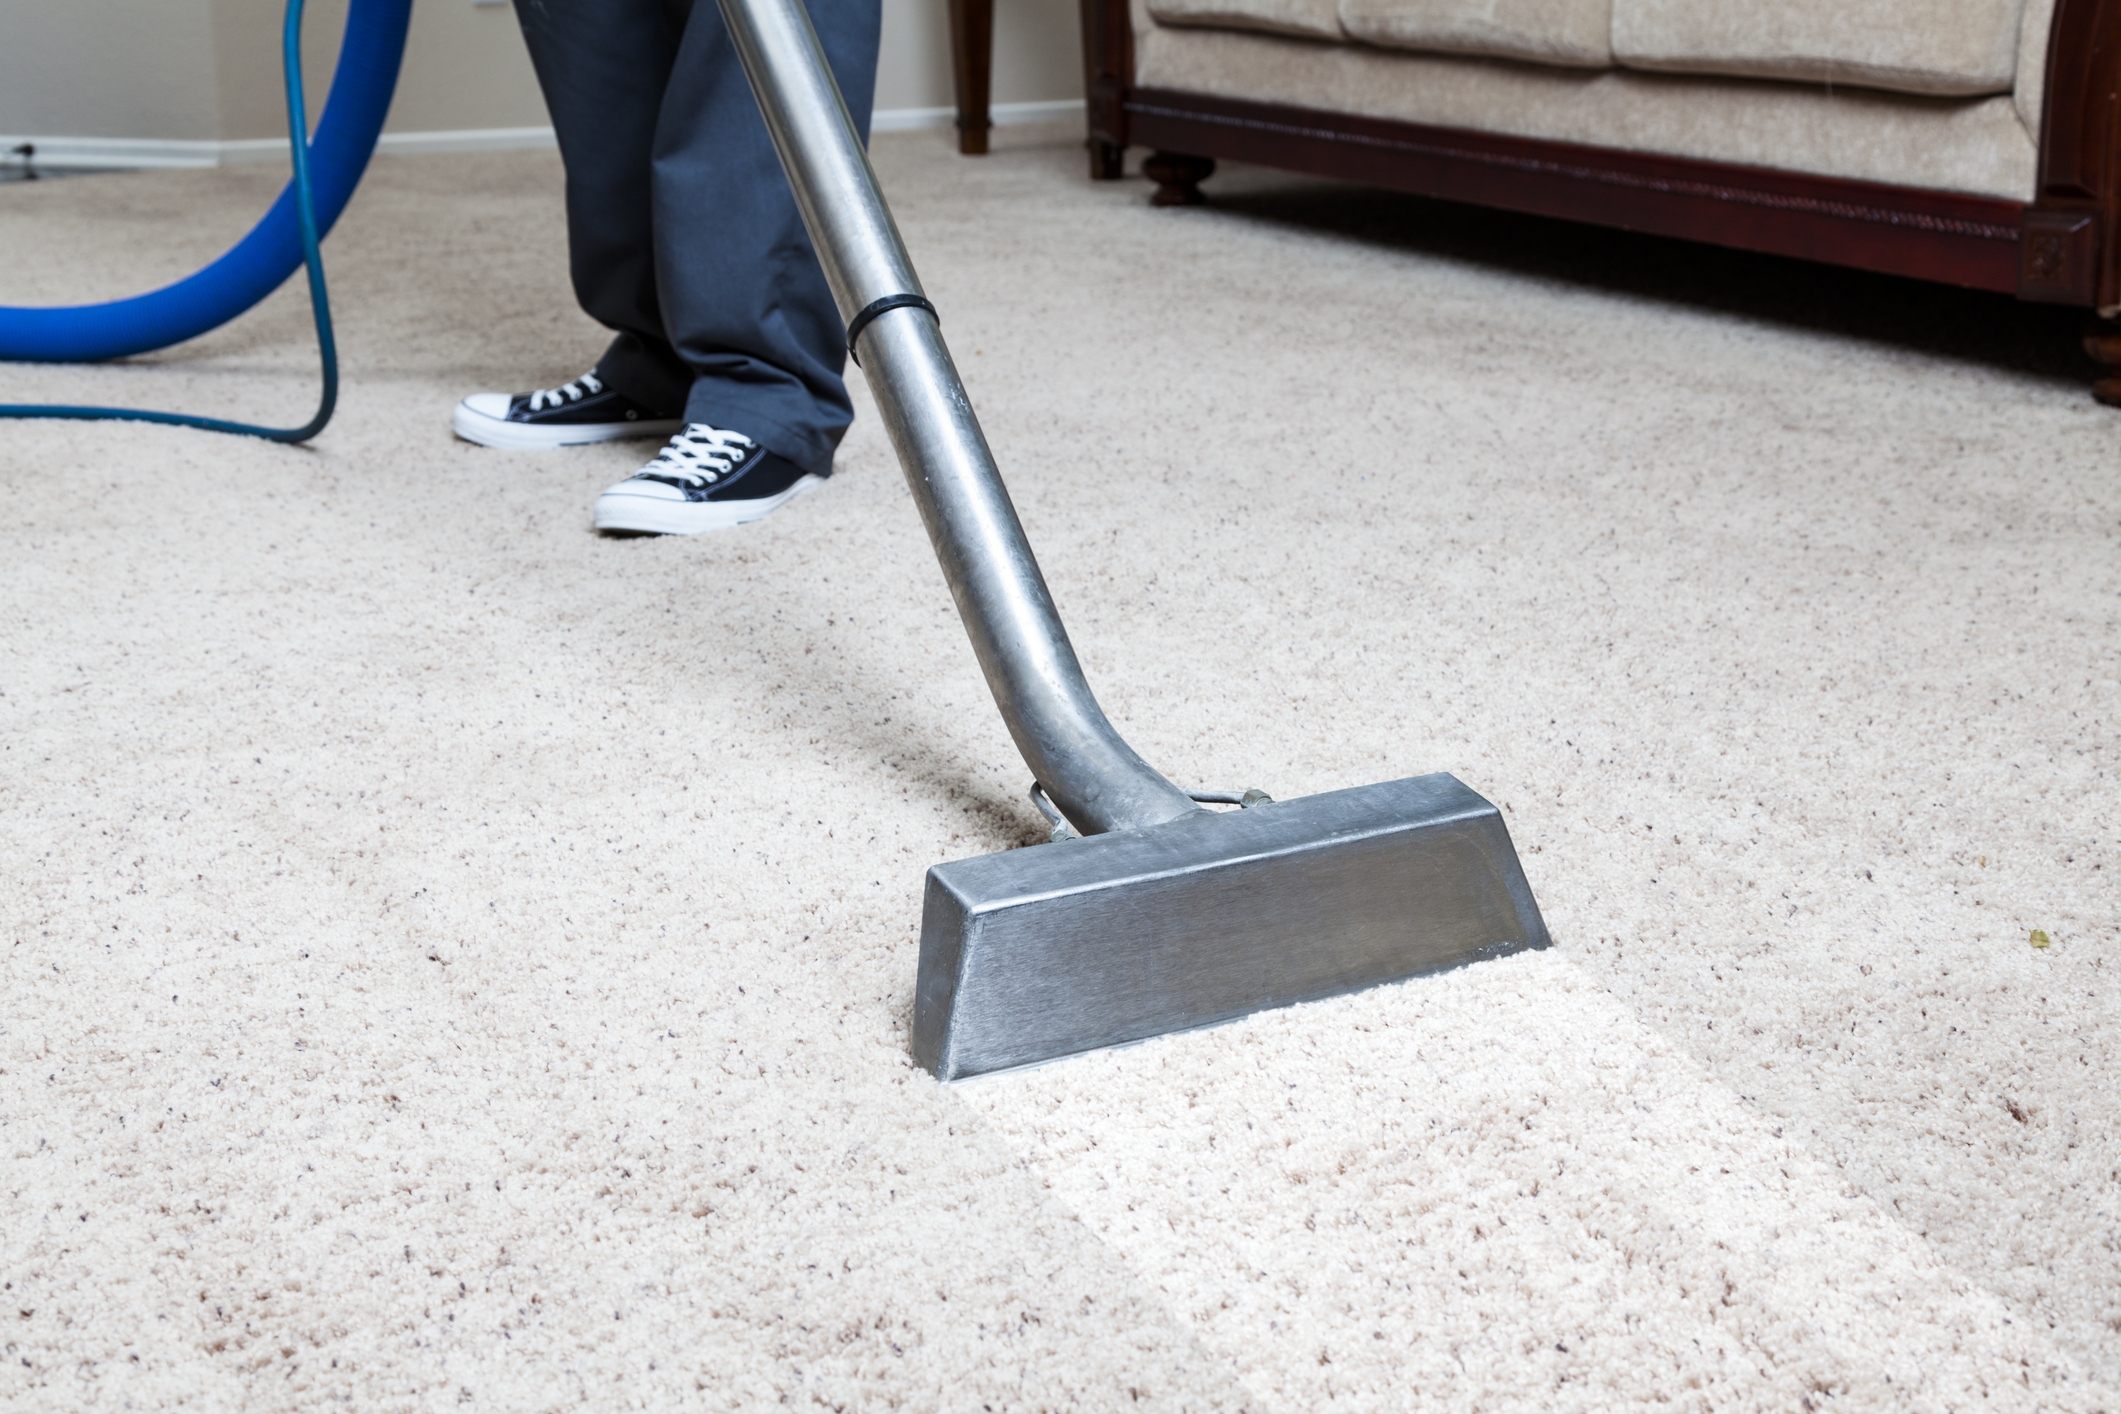 Carpet Cleaning - With our proven process you'll never have to worry about residue or harsh chemicals - we also offer an option for Fragrance-Free Cleaning. You can forget about carpet taking days to dry, our hot water extraction process leaves your carpet dry in hours.